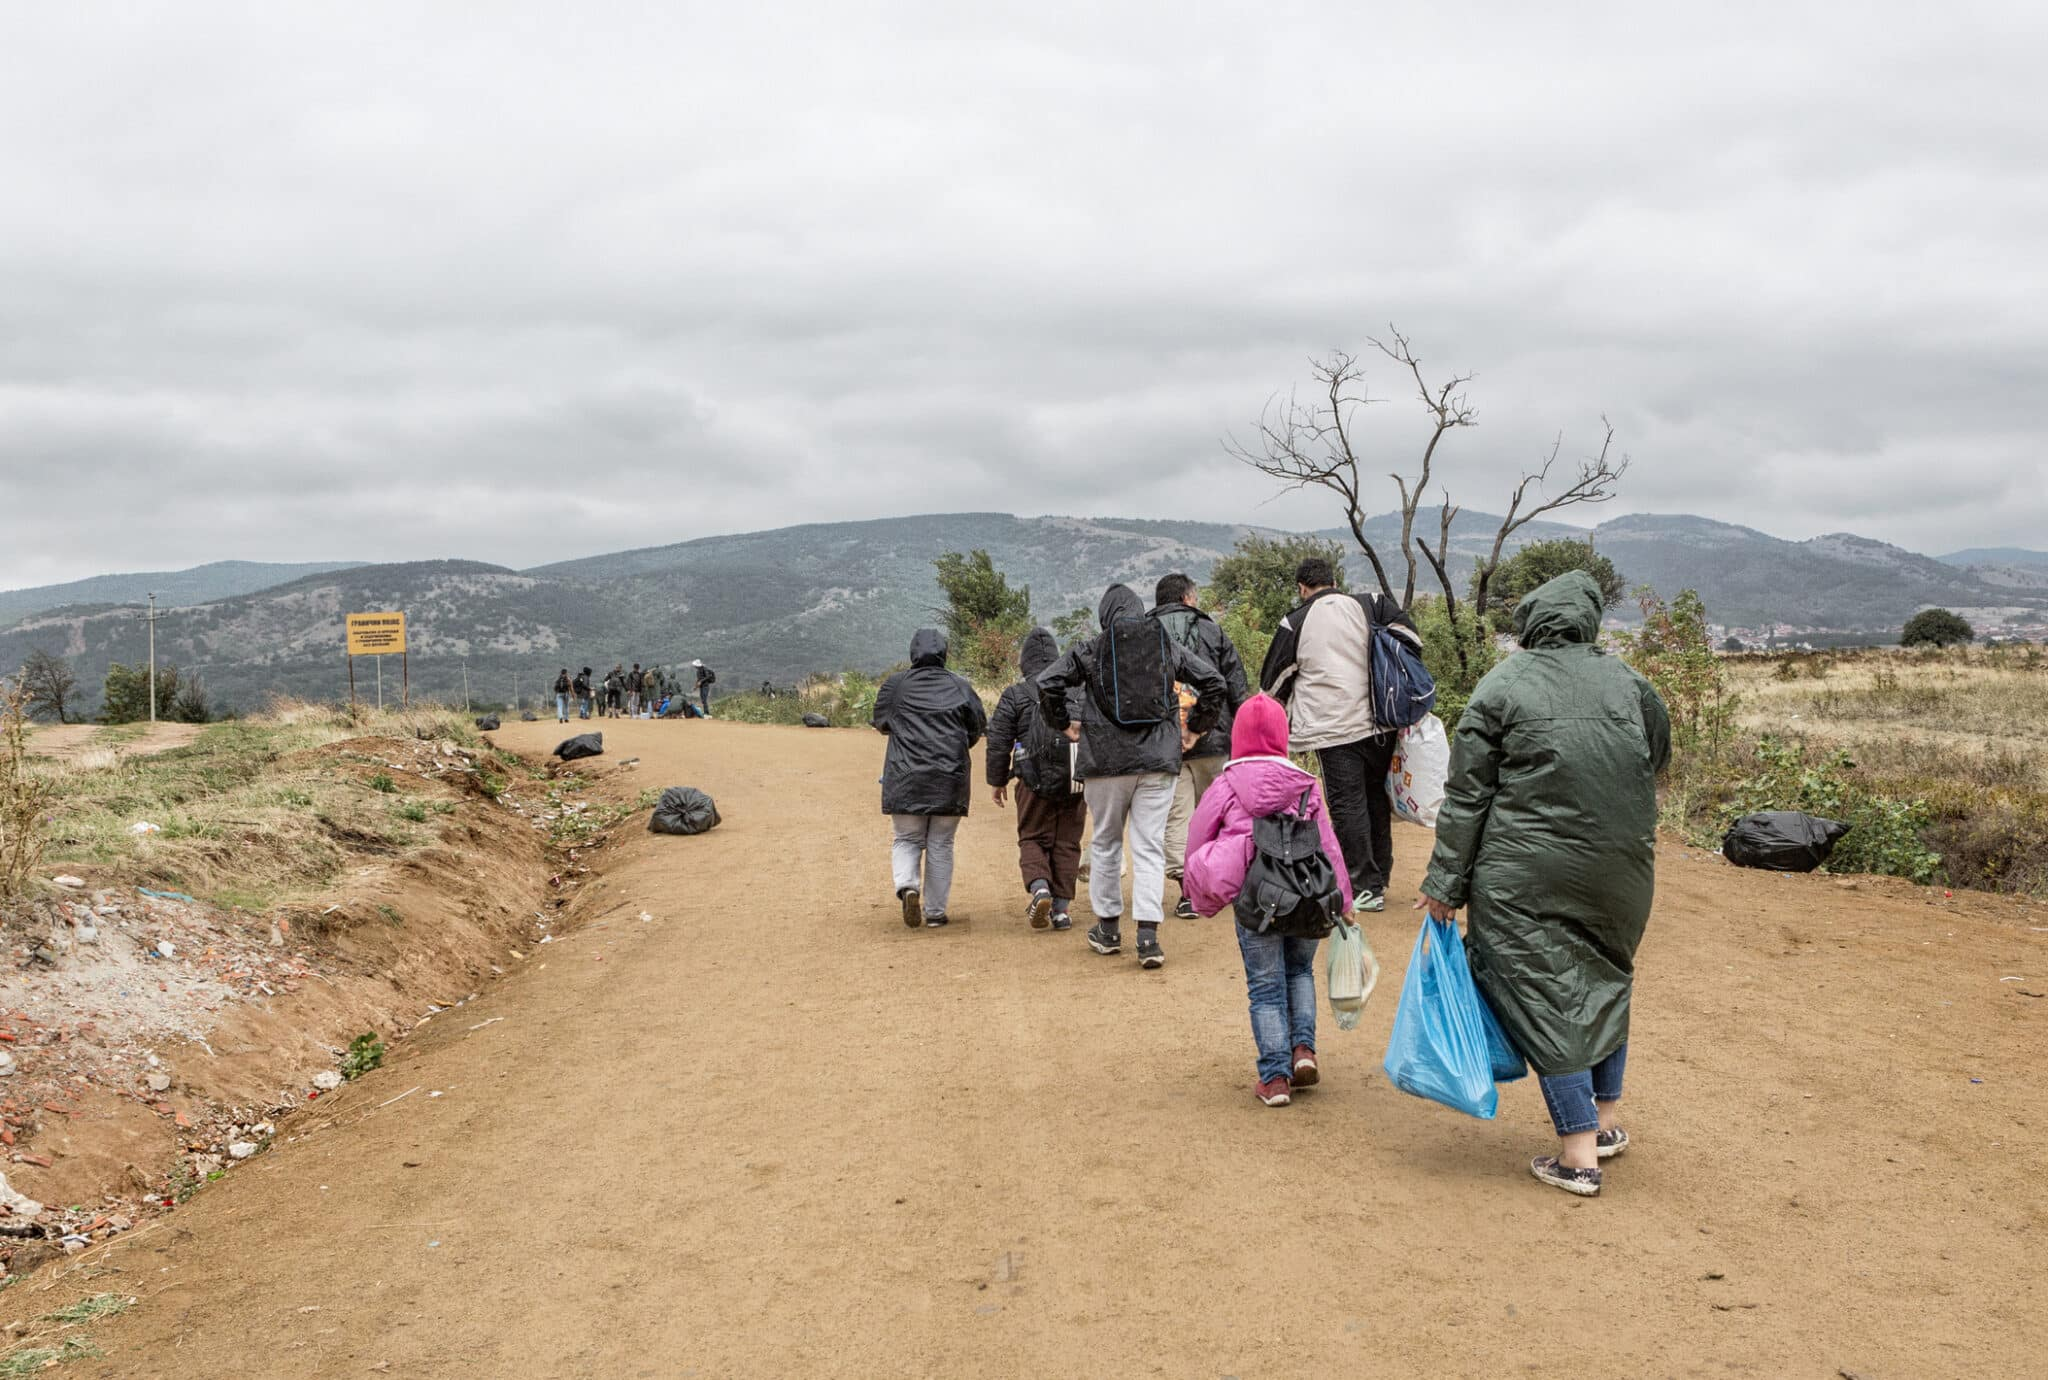 Refugees on the road